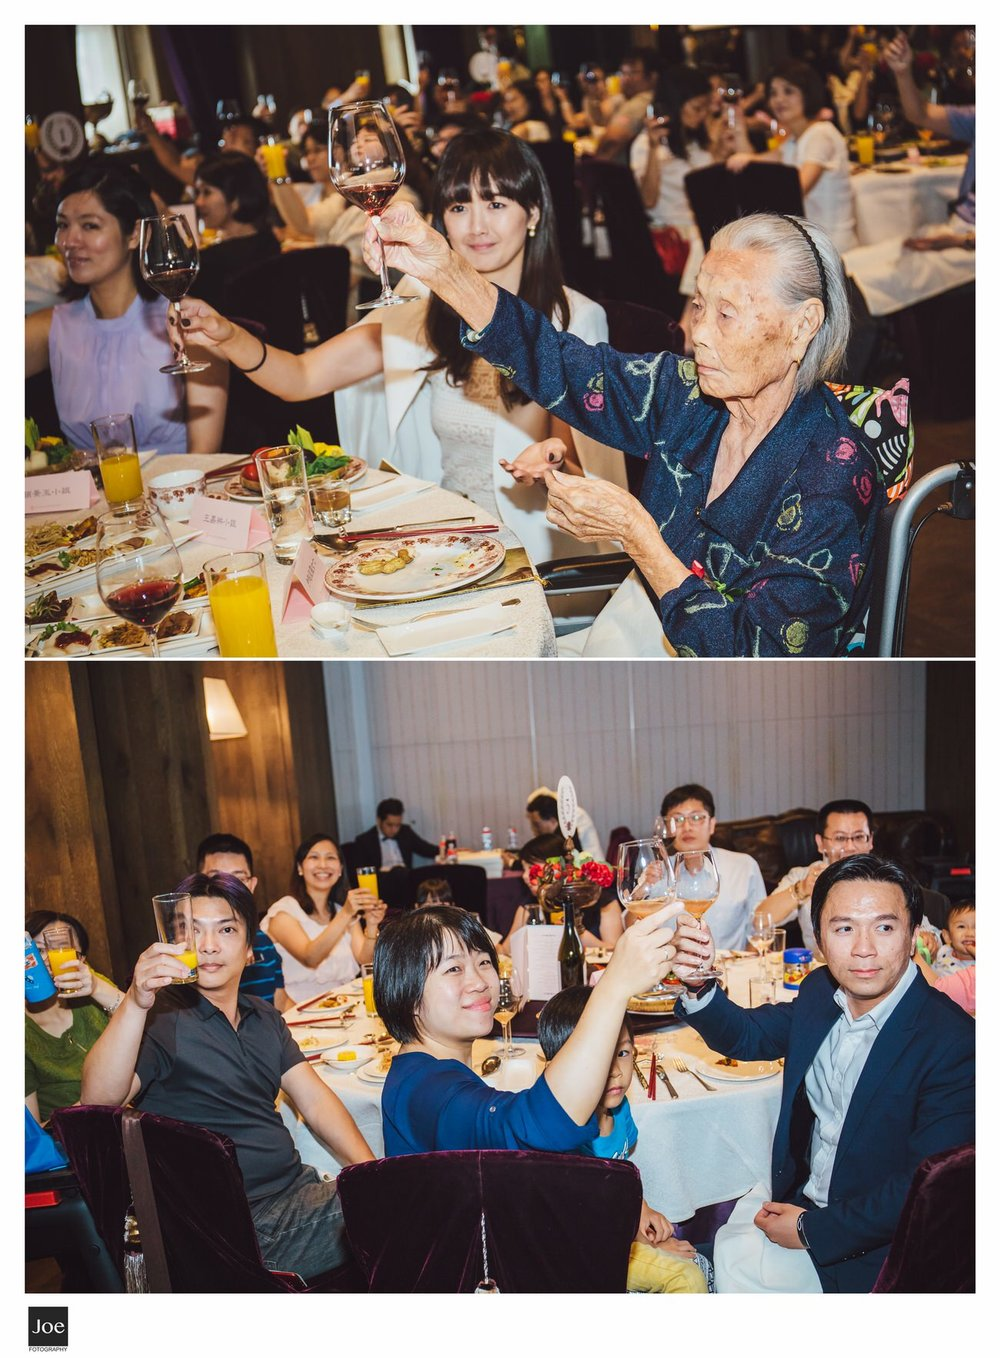 joe-fotography-wedding-photo-palais-de-chine-hotel-028.jpg